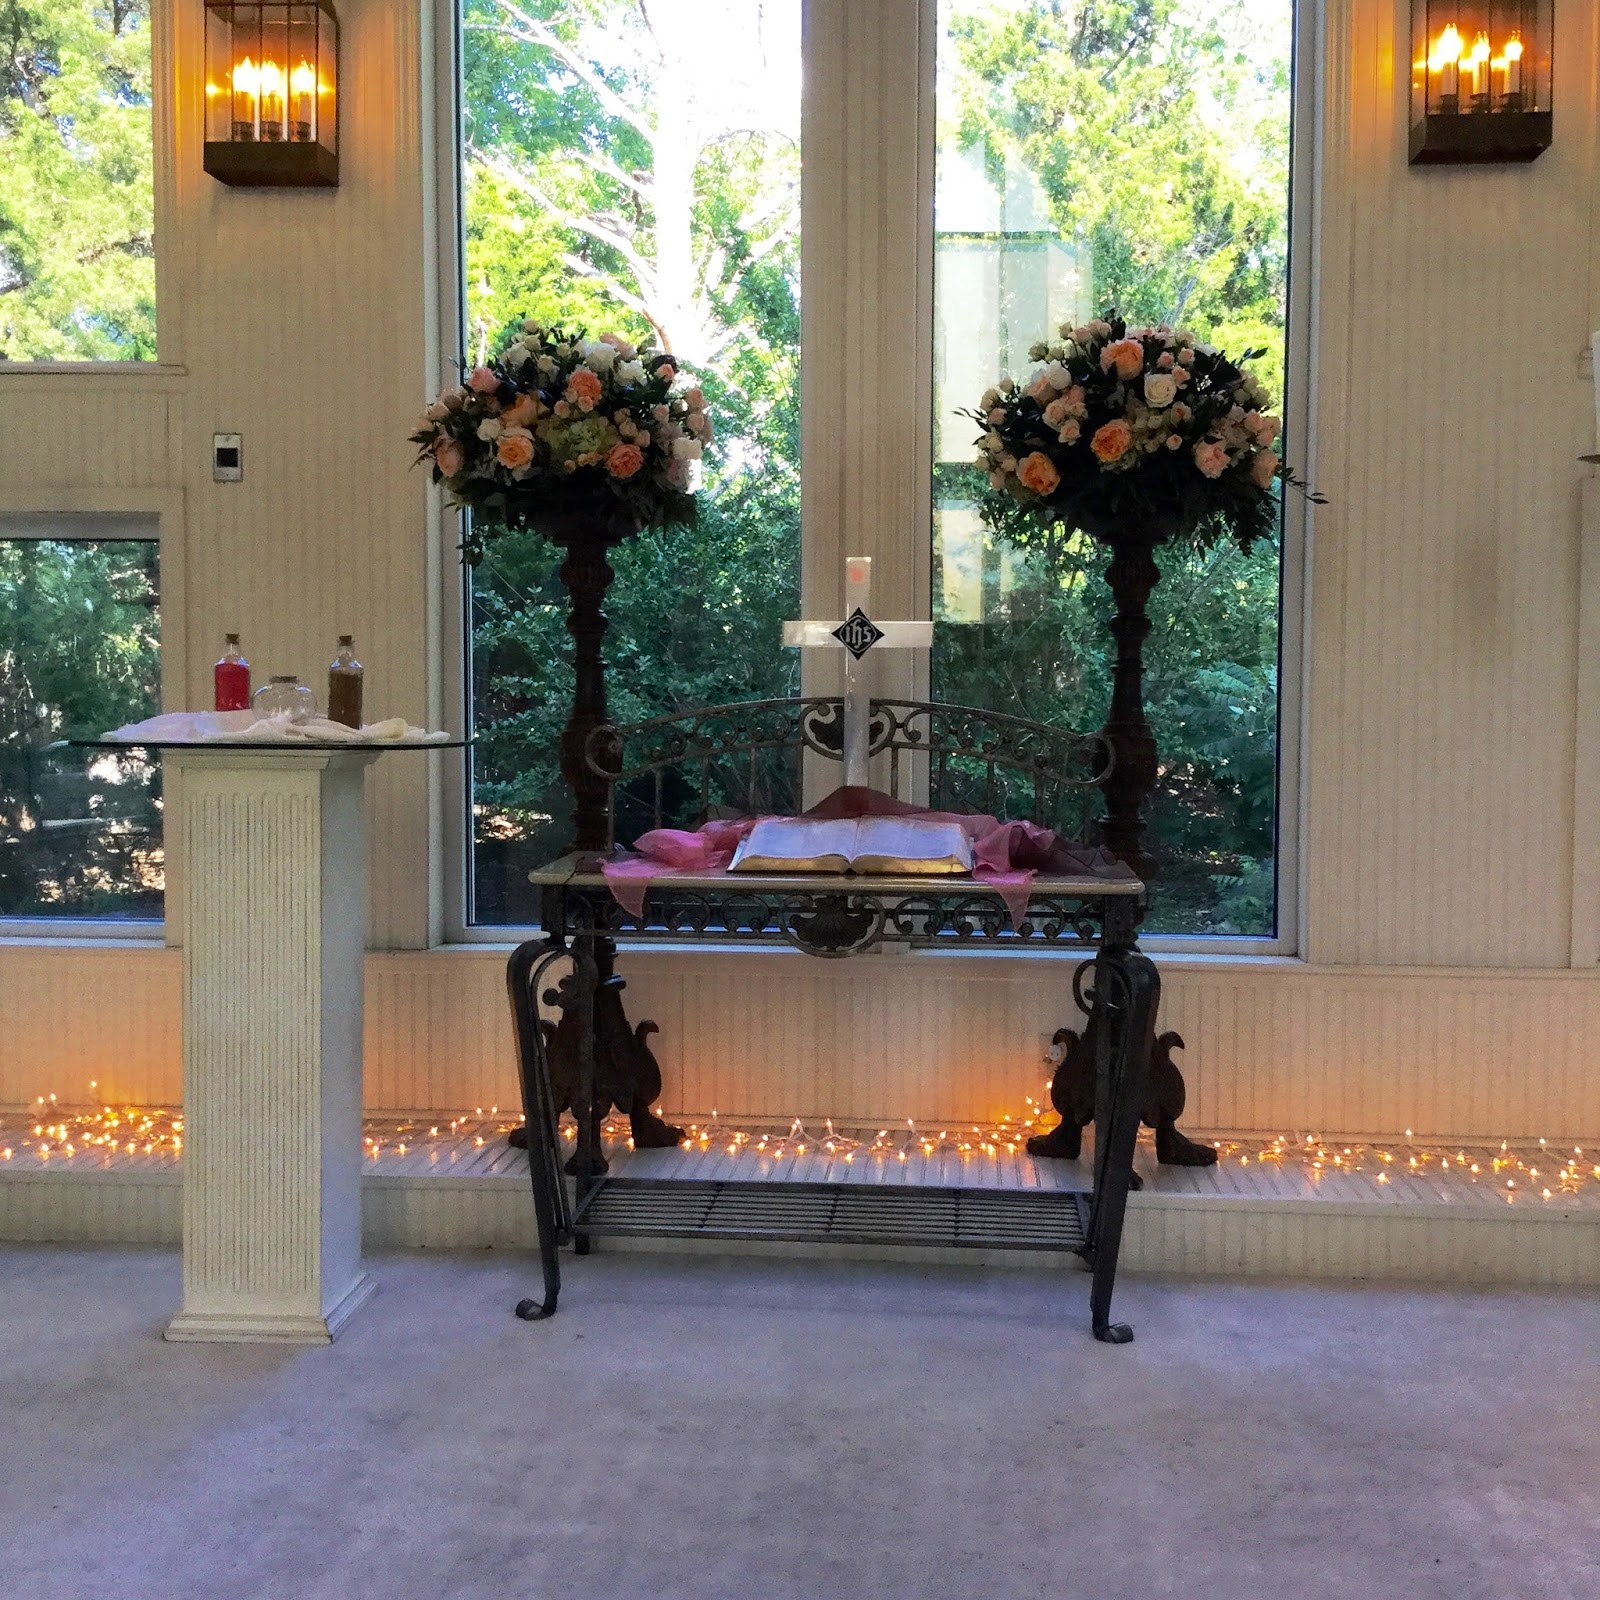 Preacher Wedding Altar: Walnut Creek Chapel: Katrina Bohannan & Ted Saxton